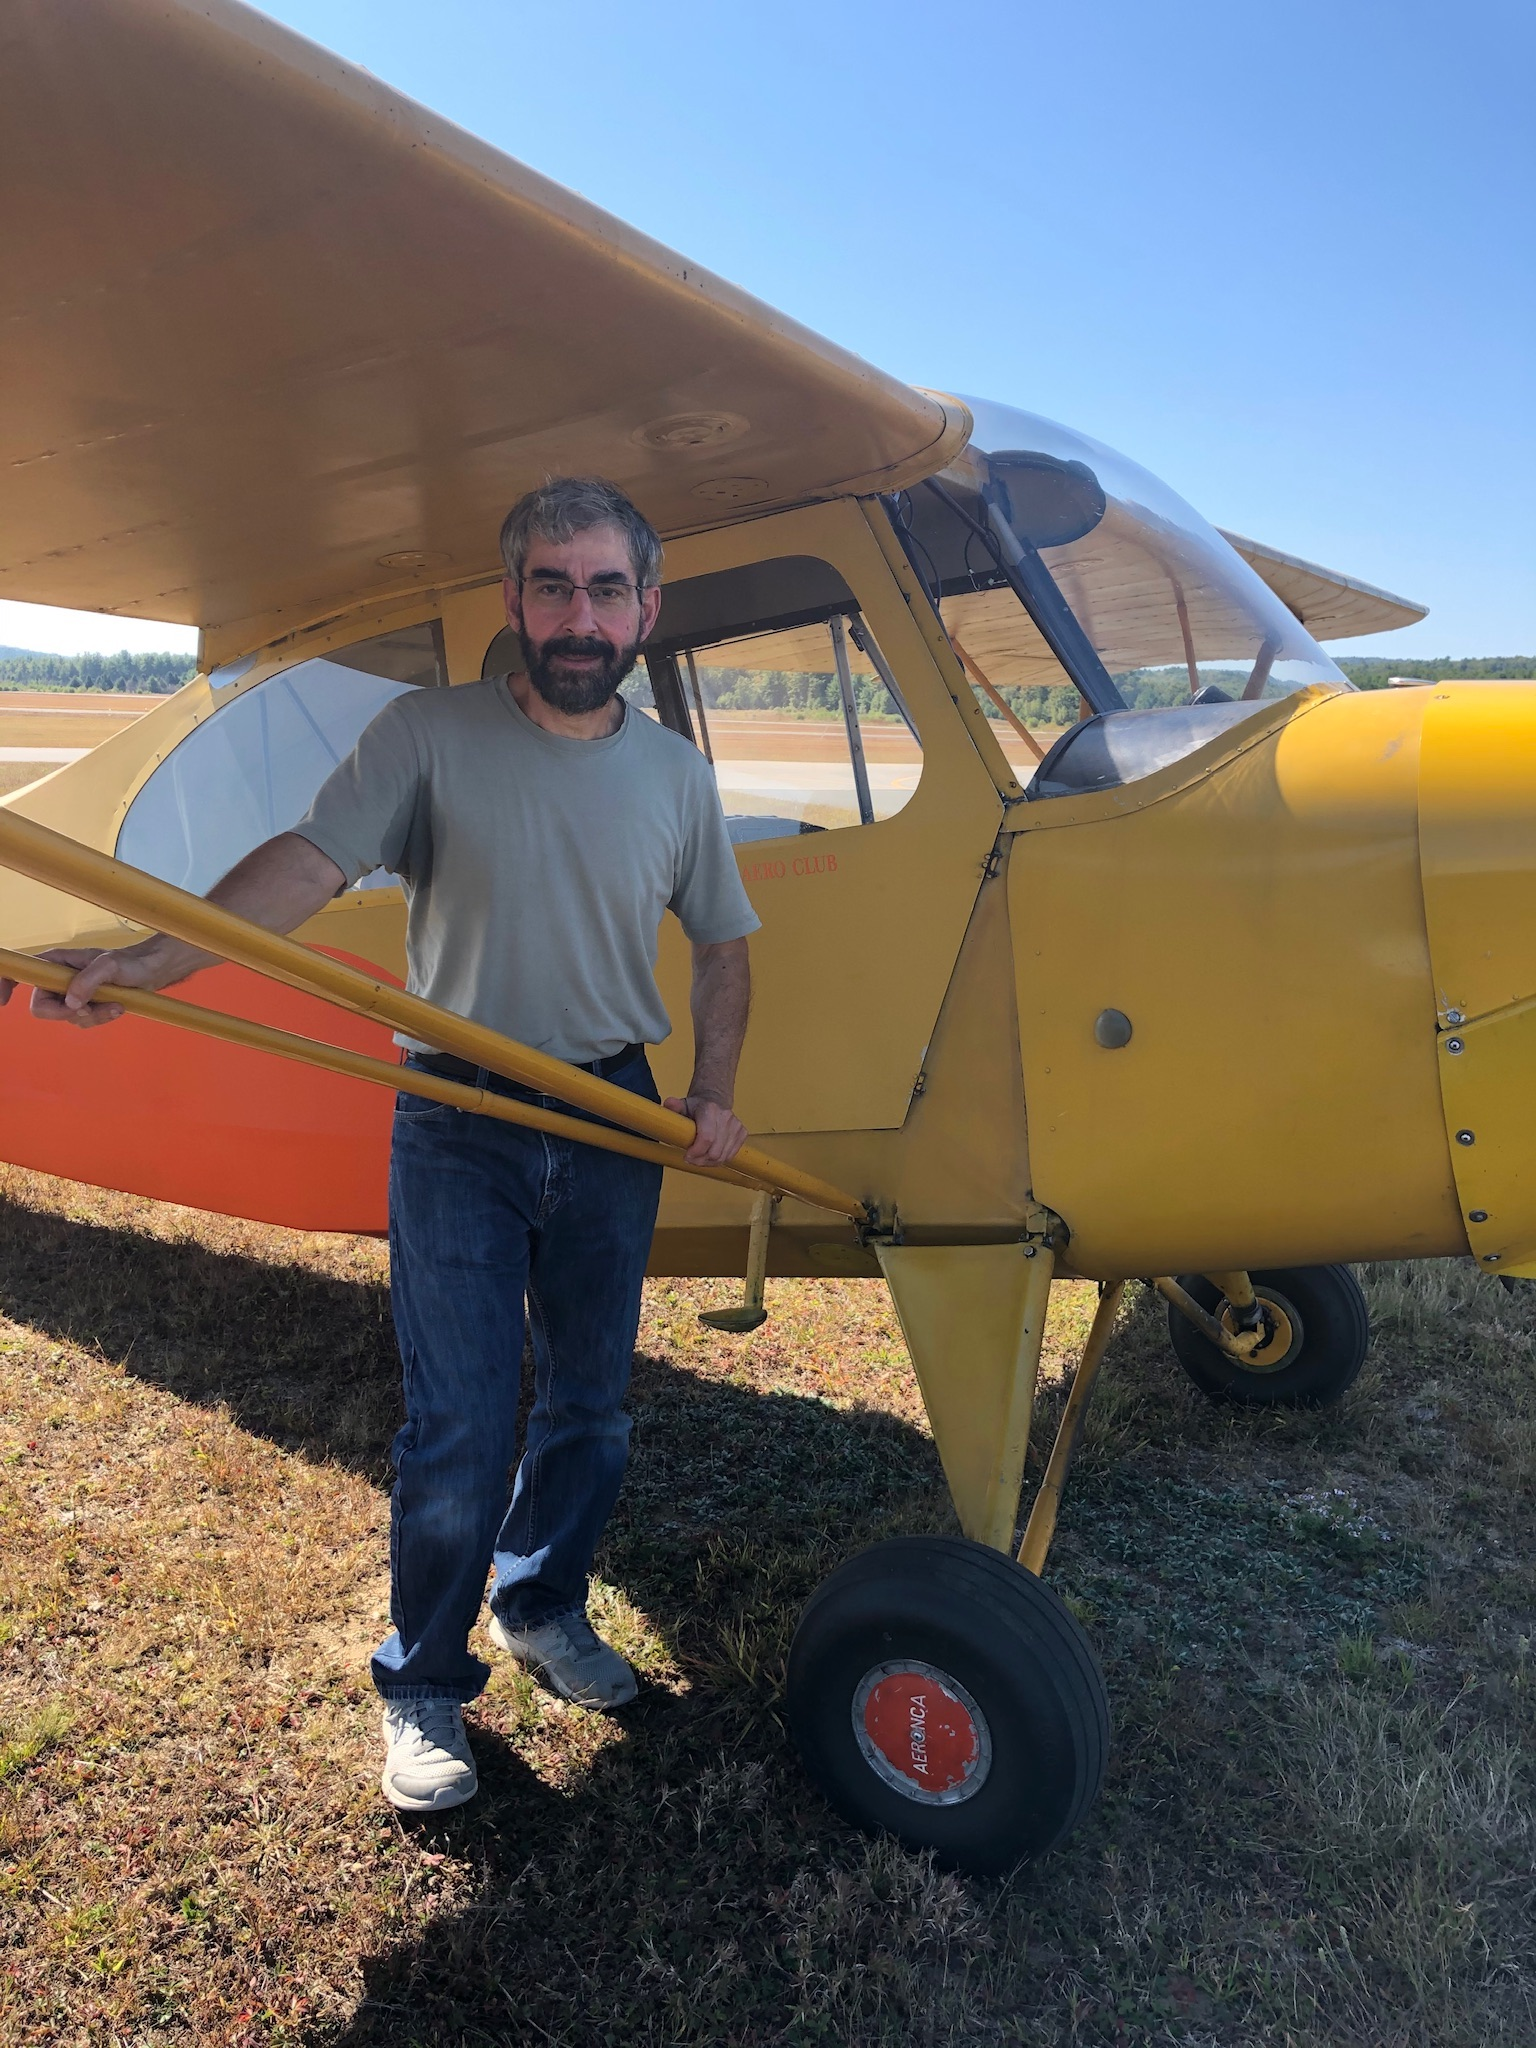 Eduardo :Tailwheel Endorsement